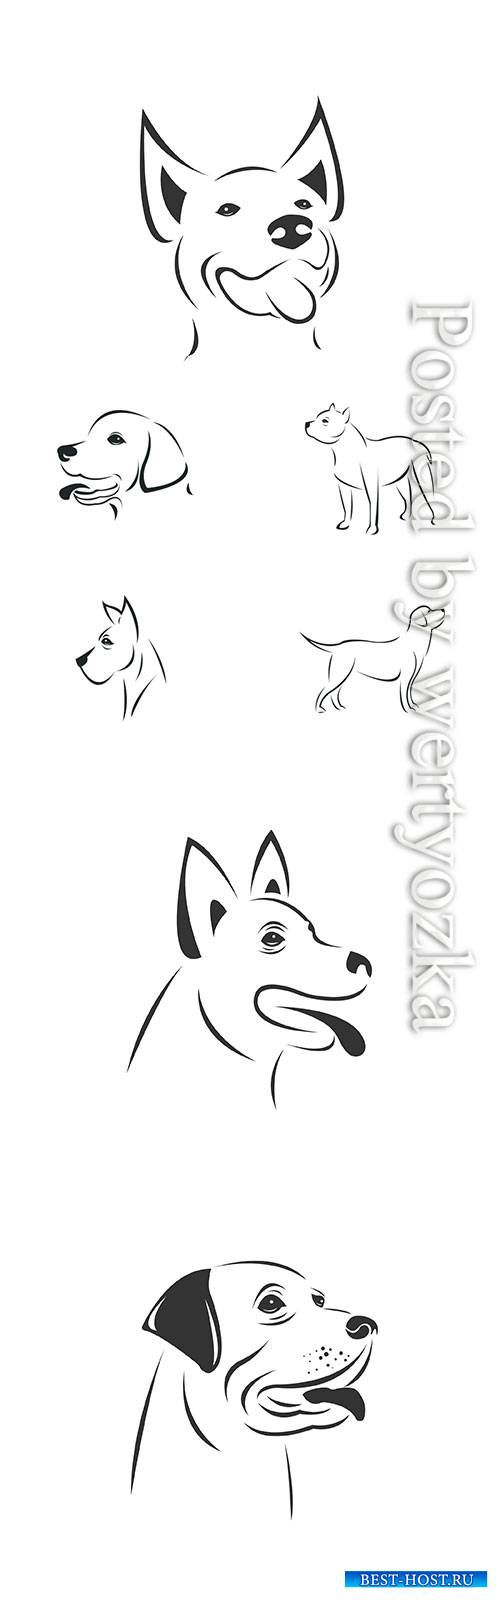 Vector image of an Dog black and white, animal logo